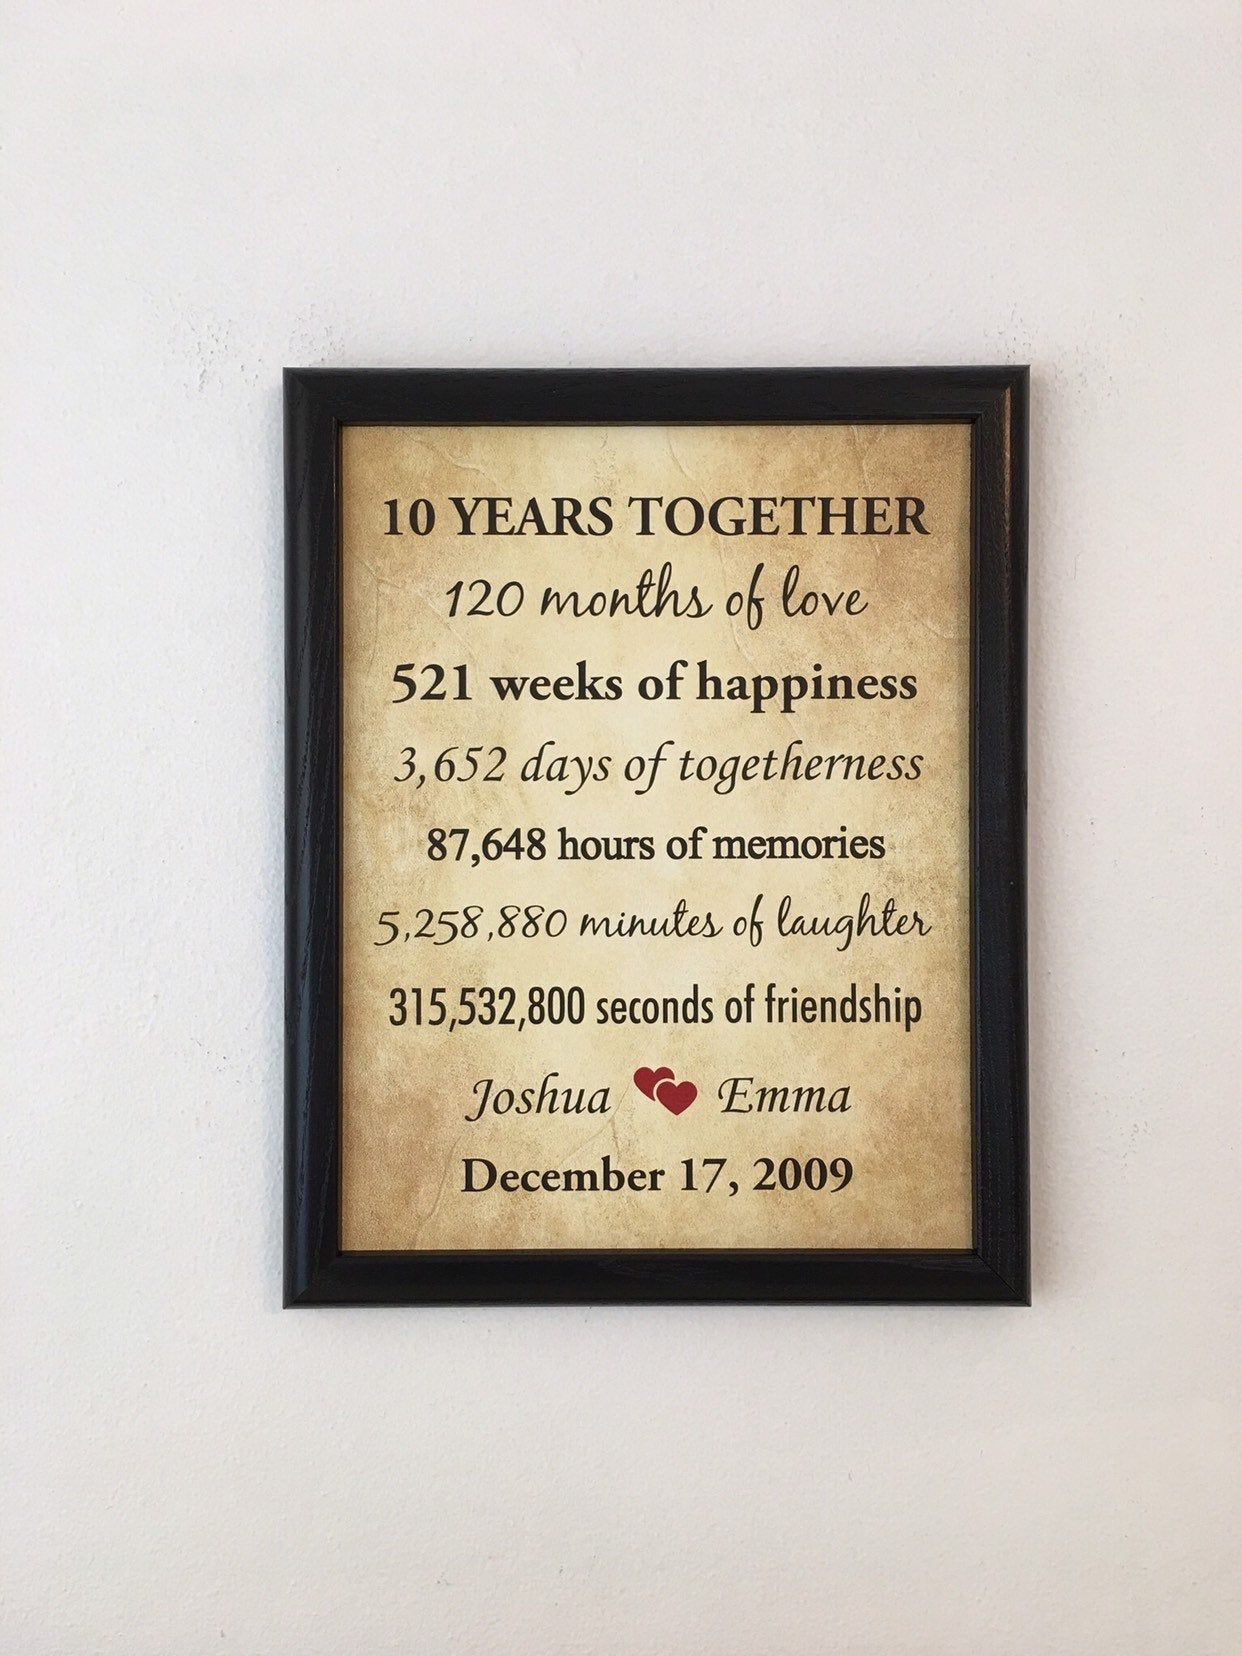 10th Anniversary Gifts 10 Year Anniversary Framed 10th Anniversary Gift 10 Years Together 9 Year Anniversary 7 Year Anniversary Gift Year Anniversary Gifts